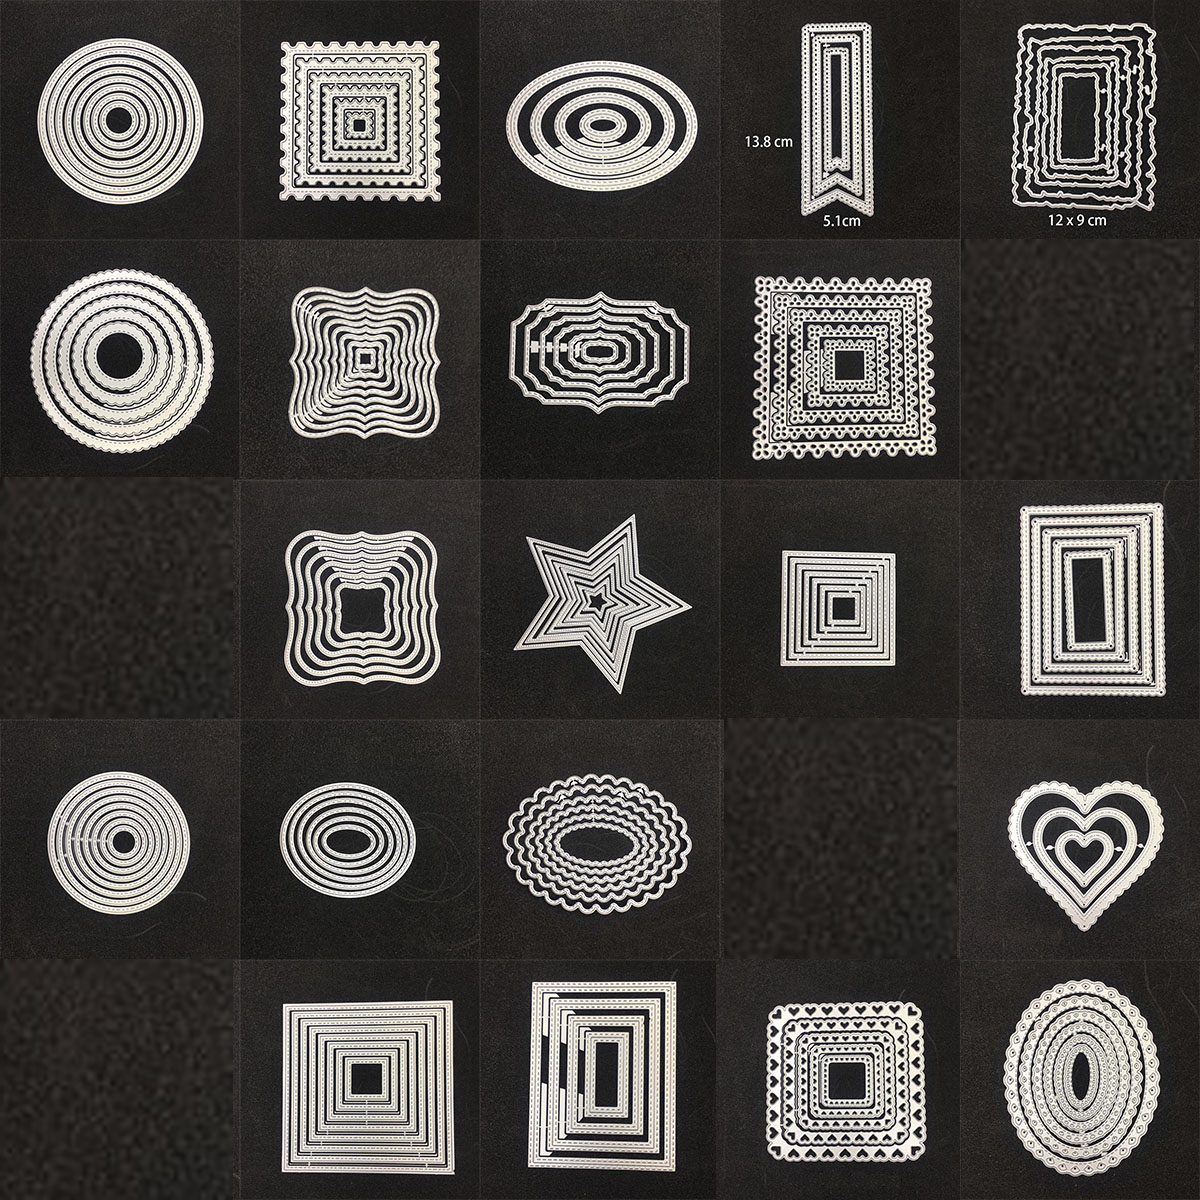 Square Star Heart Rectangle Circle Dies Frame Metal Cutting Die For DIY Scrapbooking Paper Cards Die Cuts Photo Album Making